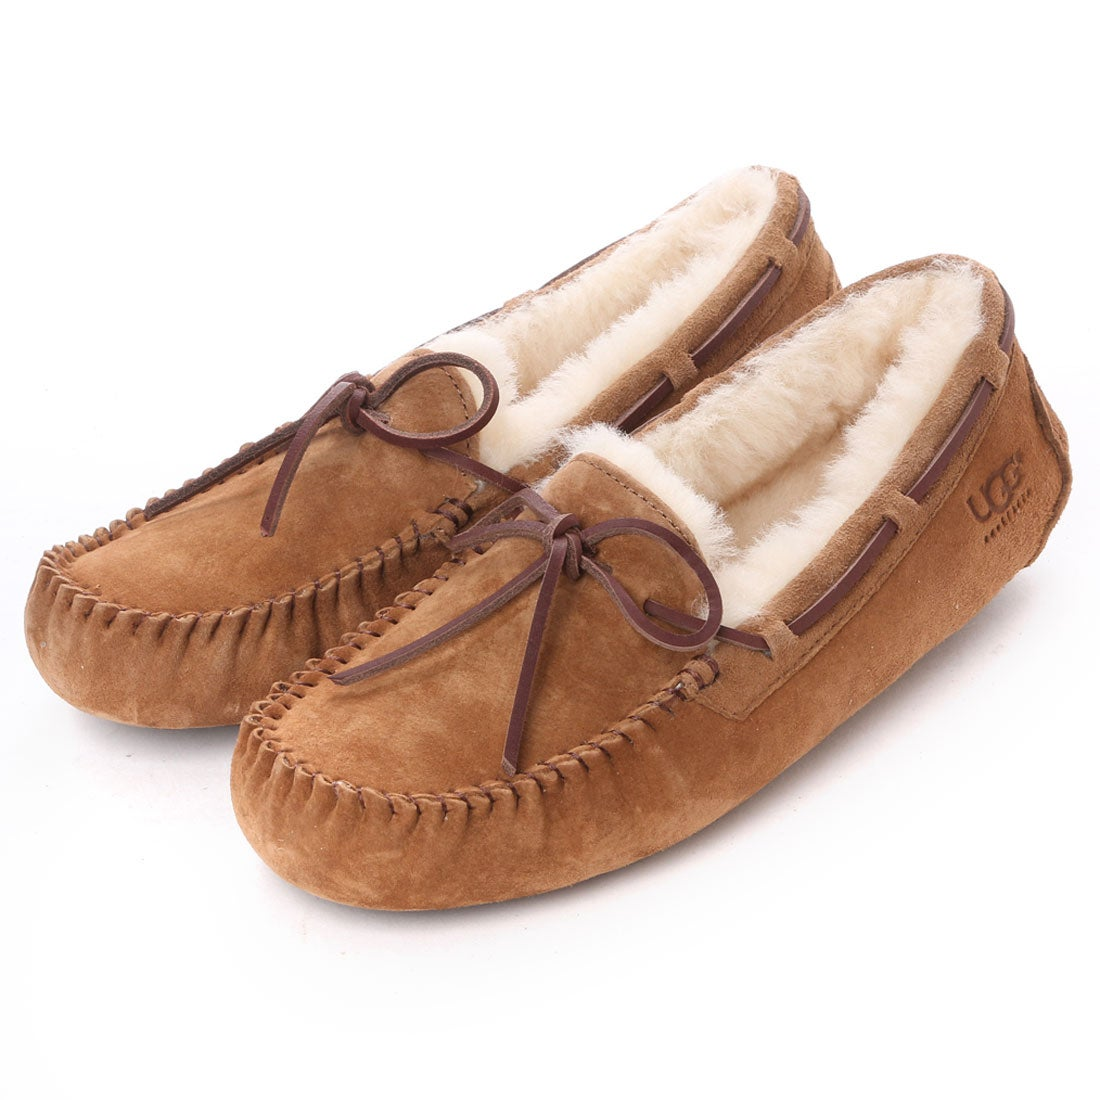 【SALE 15%OFF】アグ UGG Dakota (Chestnut) レディース